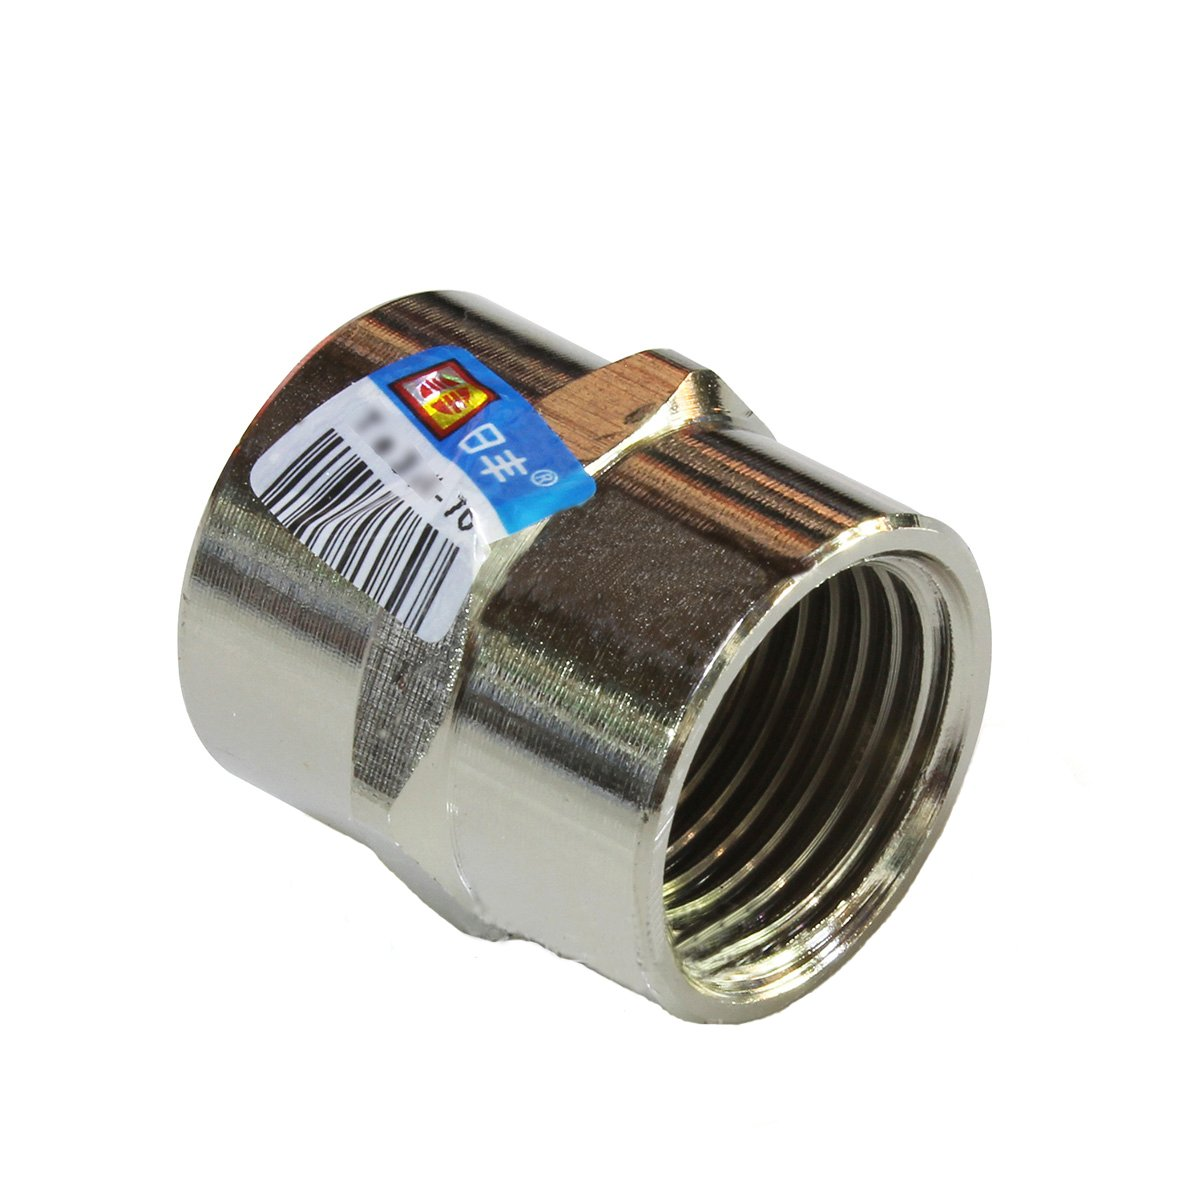 Kingbull 1/2 x 1/2 Inch Thread Pipe Connection Female x Female Screwed Nipple Pipe Fitting Brass Polished Chrome Rifeng